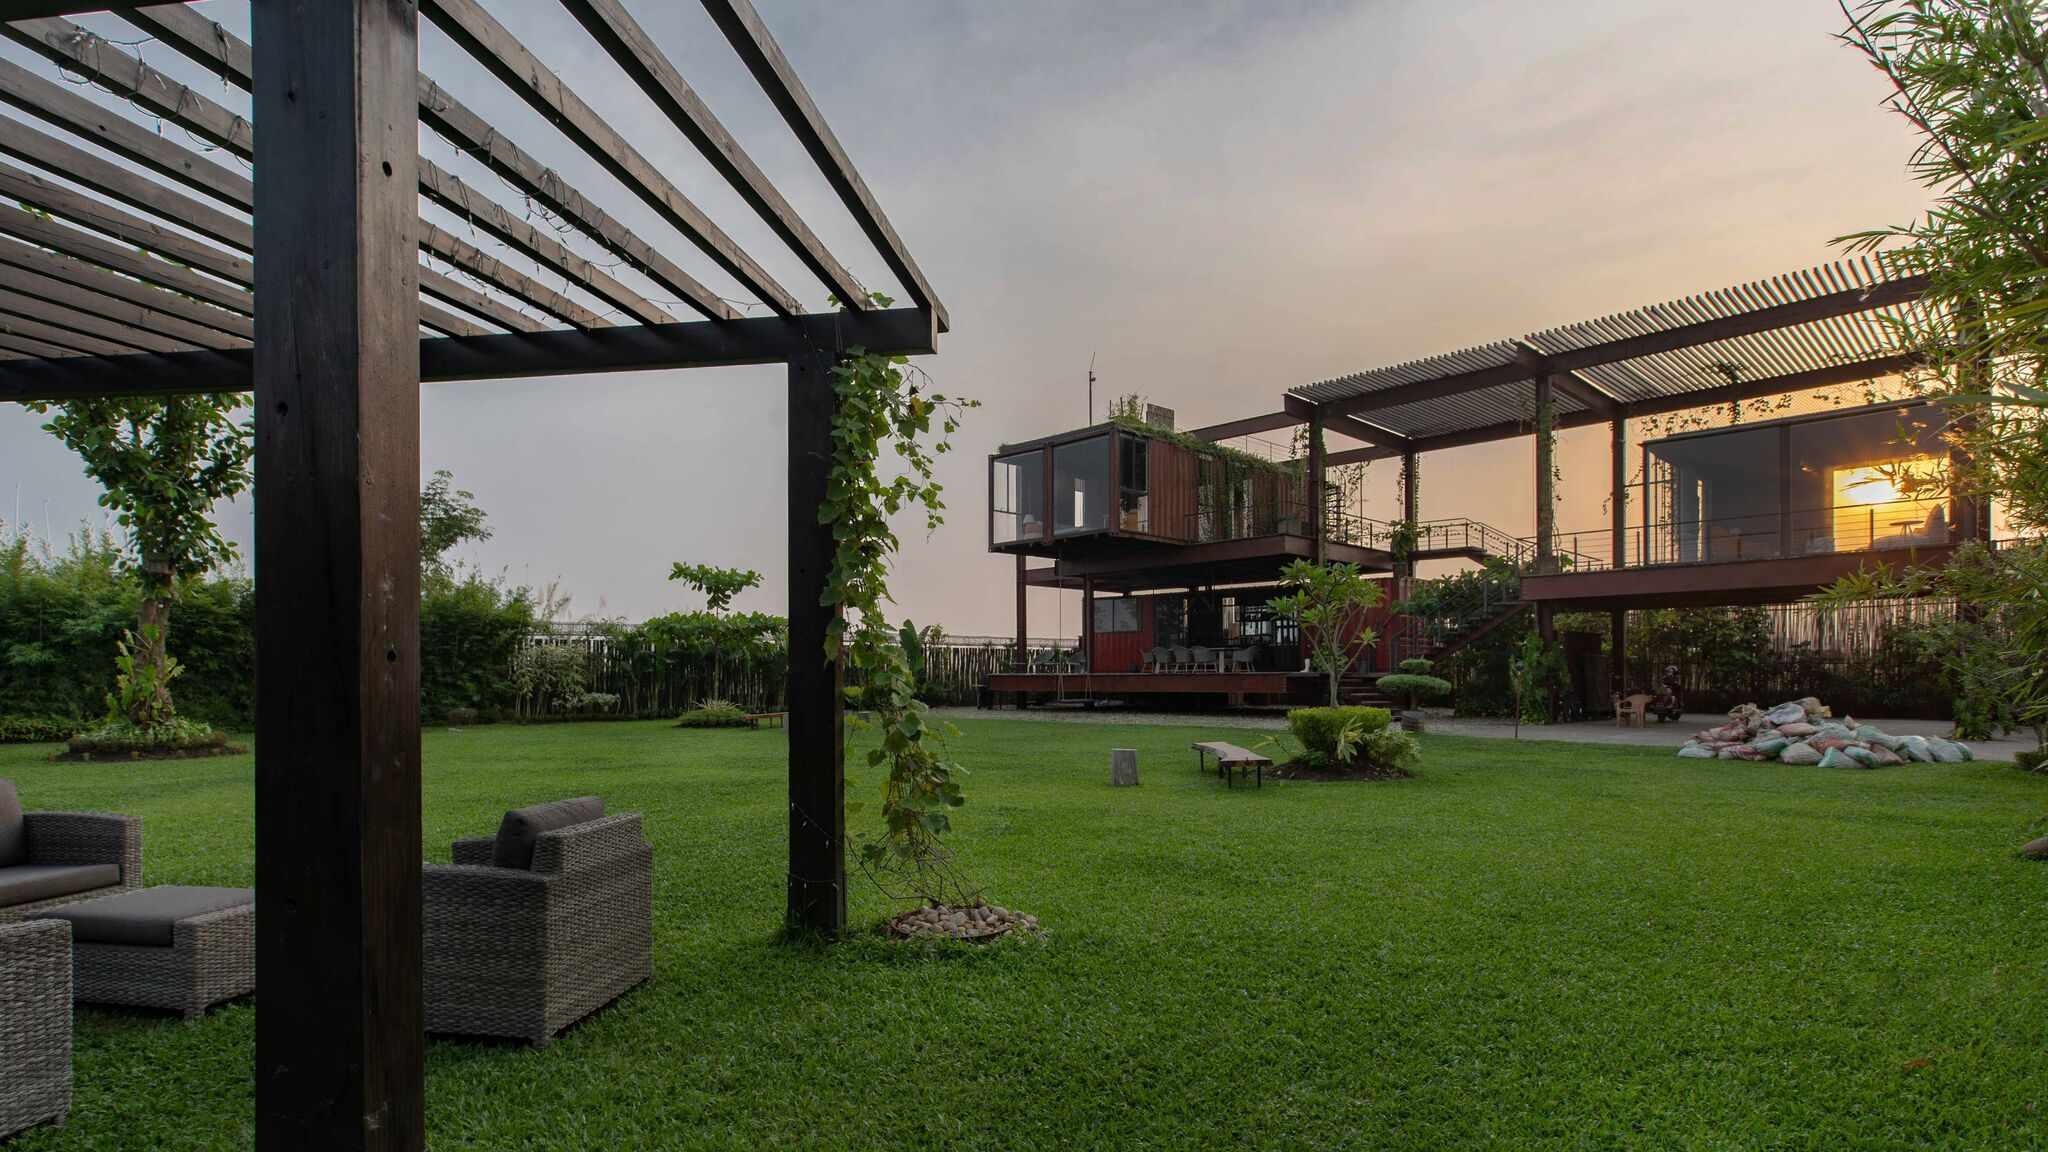 23 Incredible Shipping Container Houses Around The World